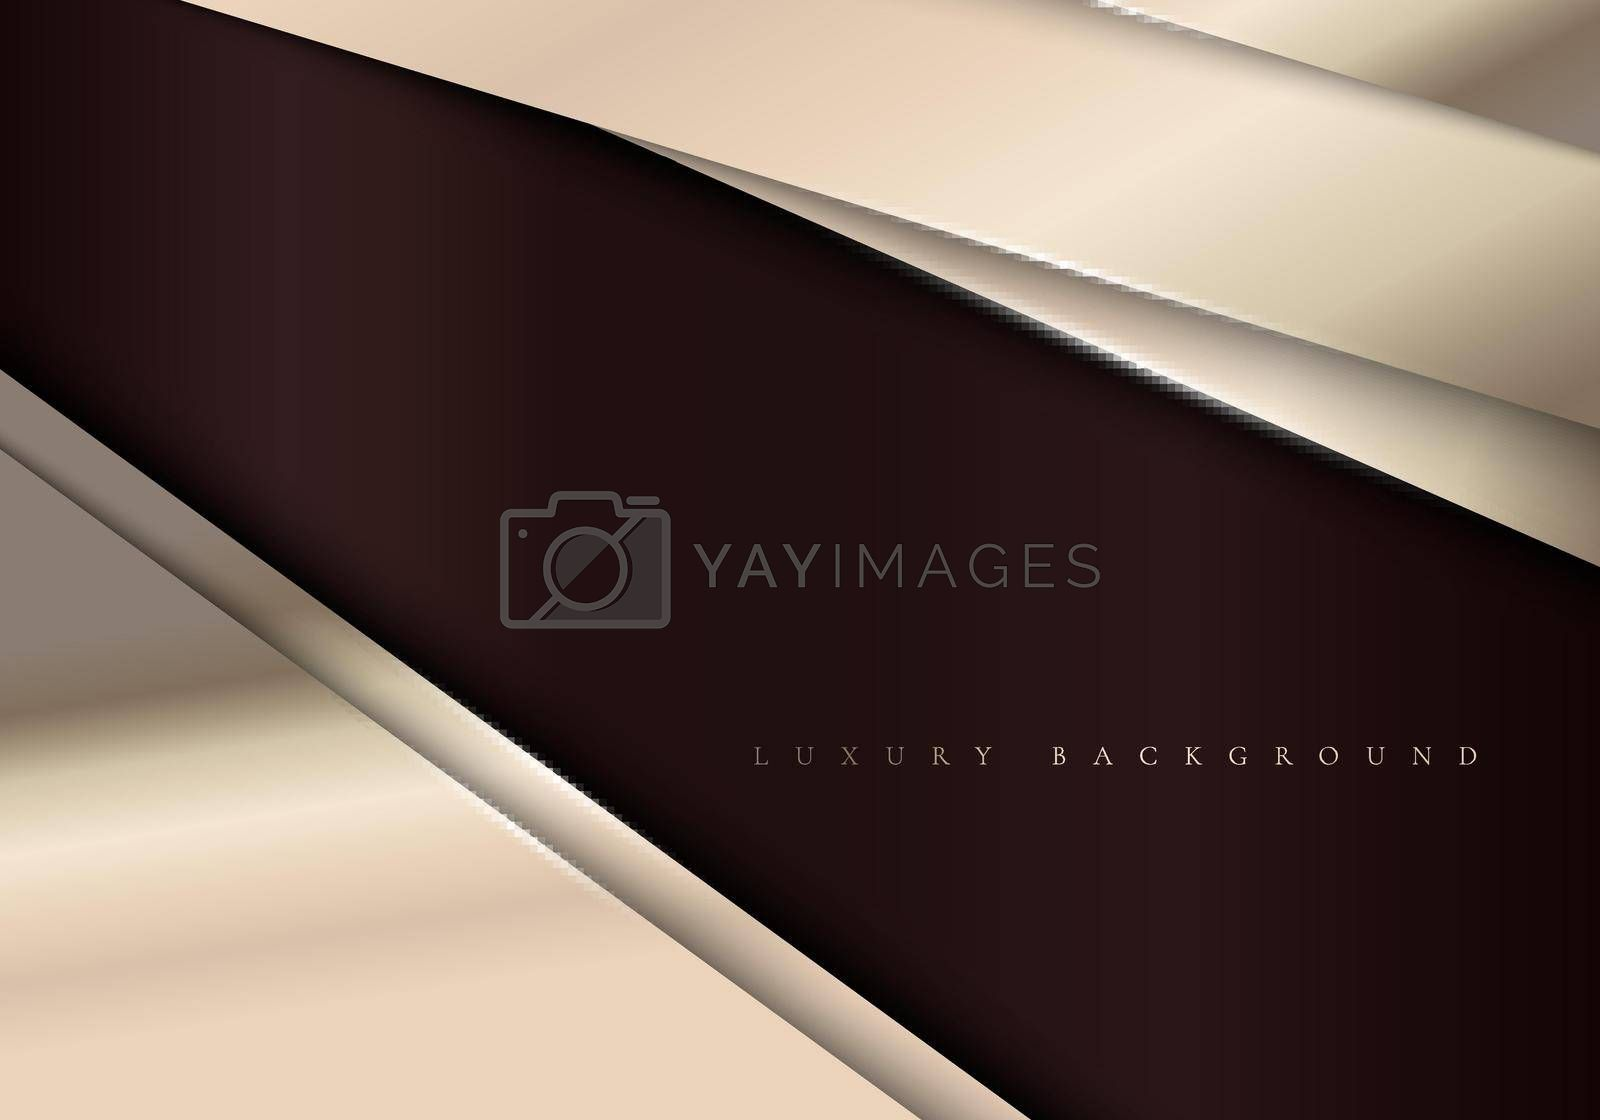 Royalty free image of Elegant metallic template background with diagonal golden stripes luxury style by phochi